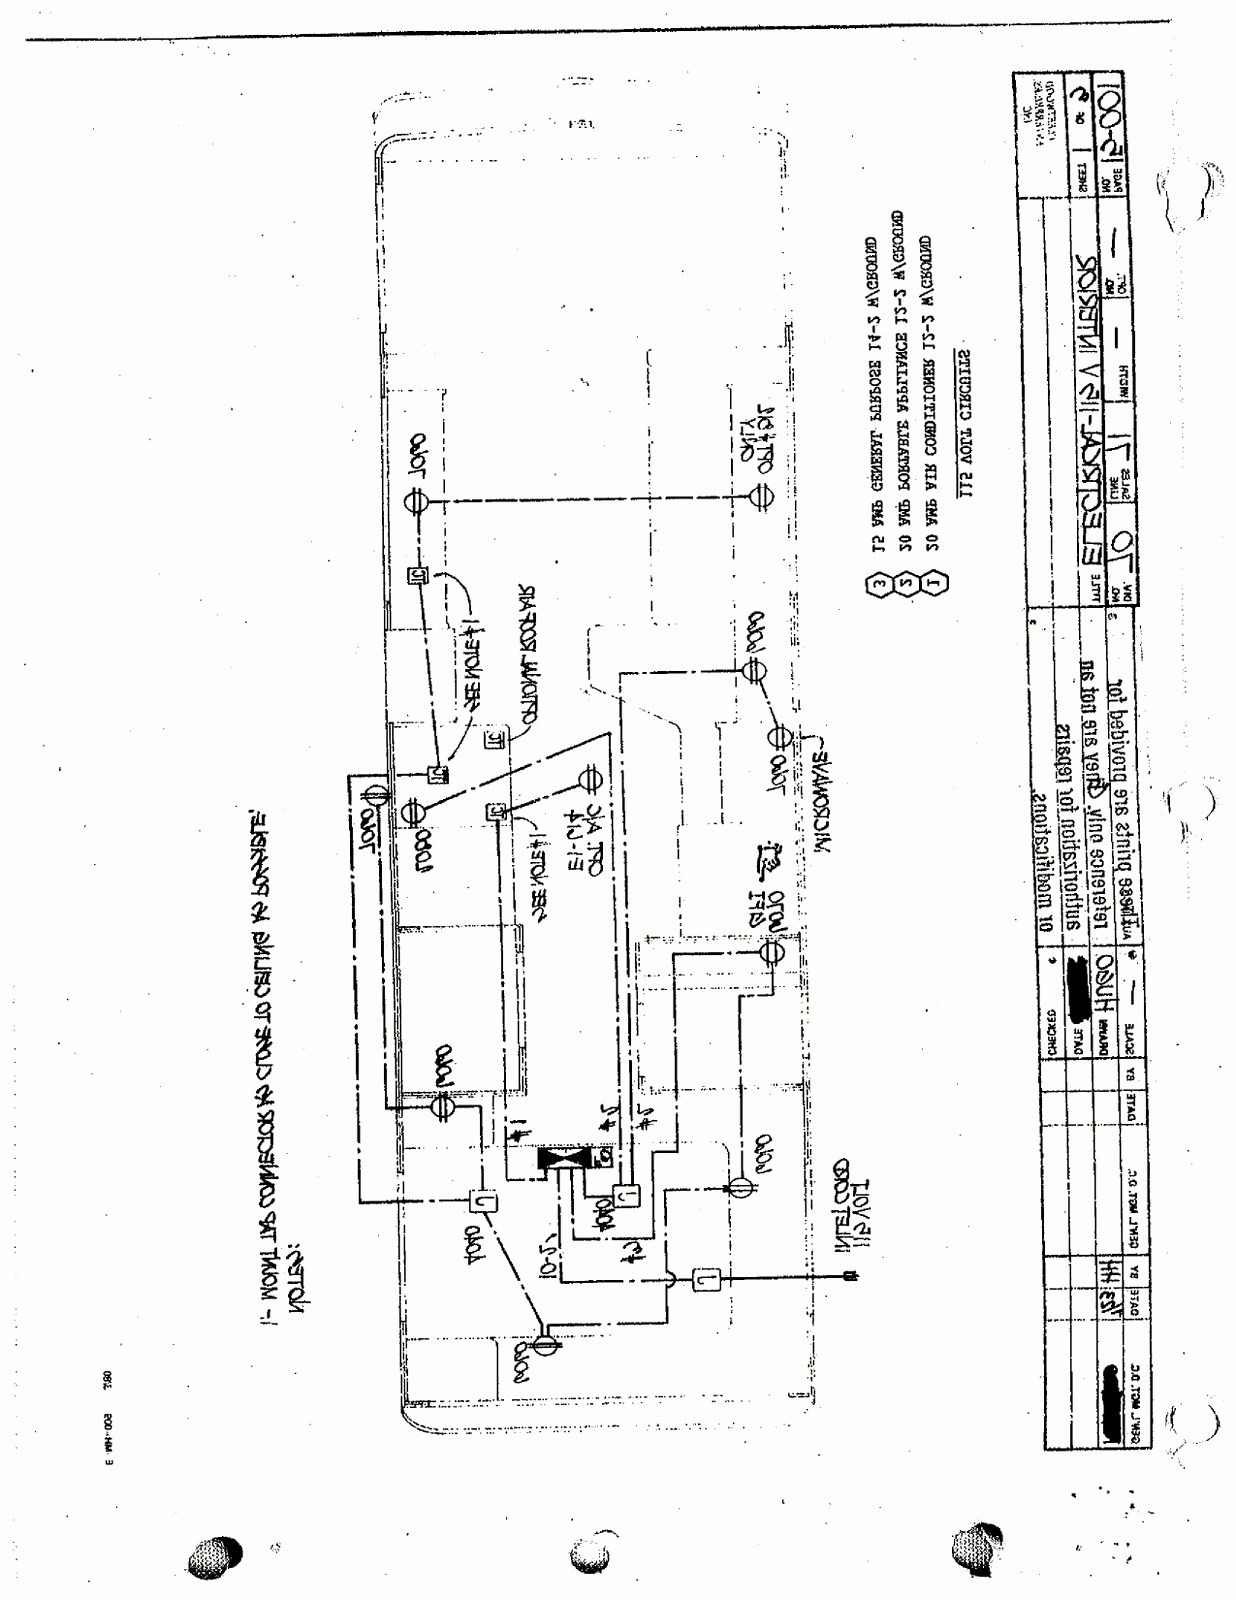 Fleetwood Rv House Battery Wiring | Wiring Diagram - Fleetwood Motorhome Wiring Diagram